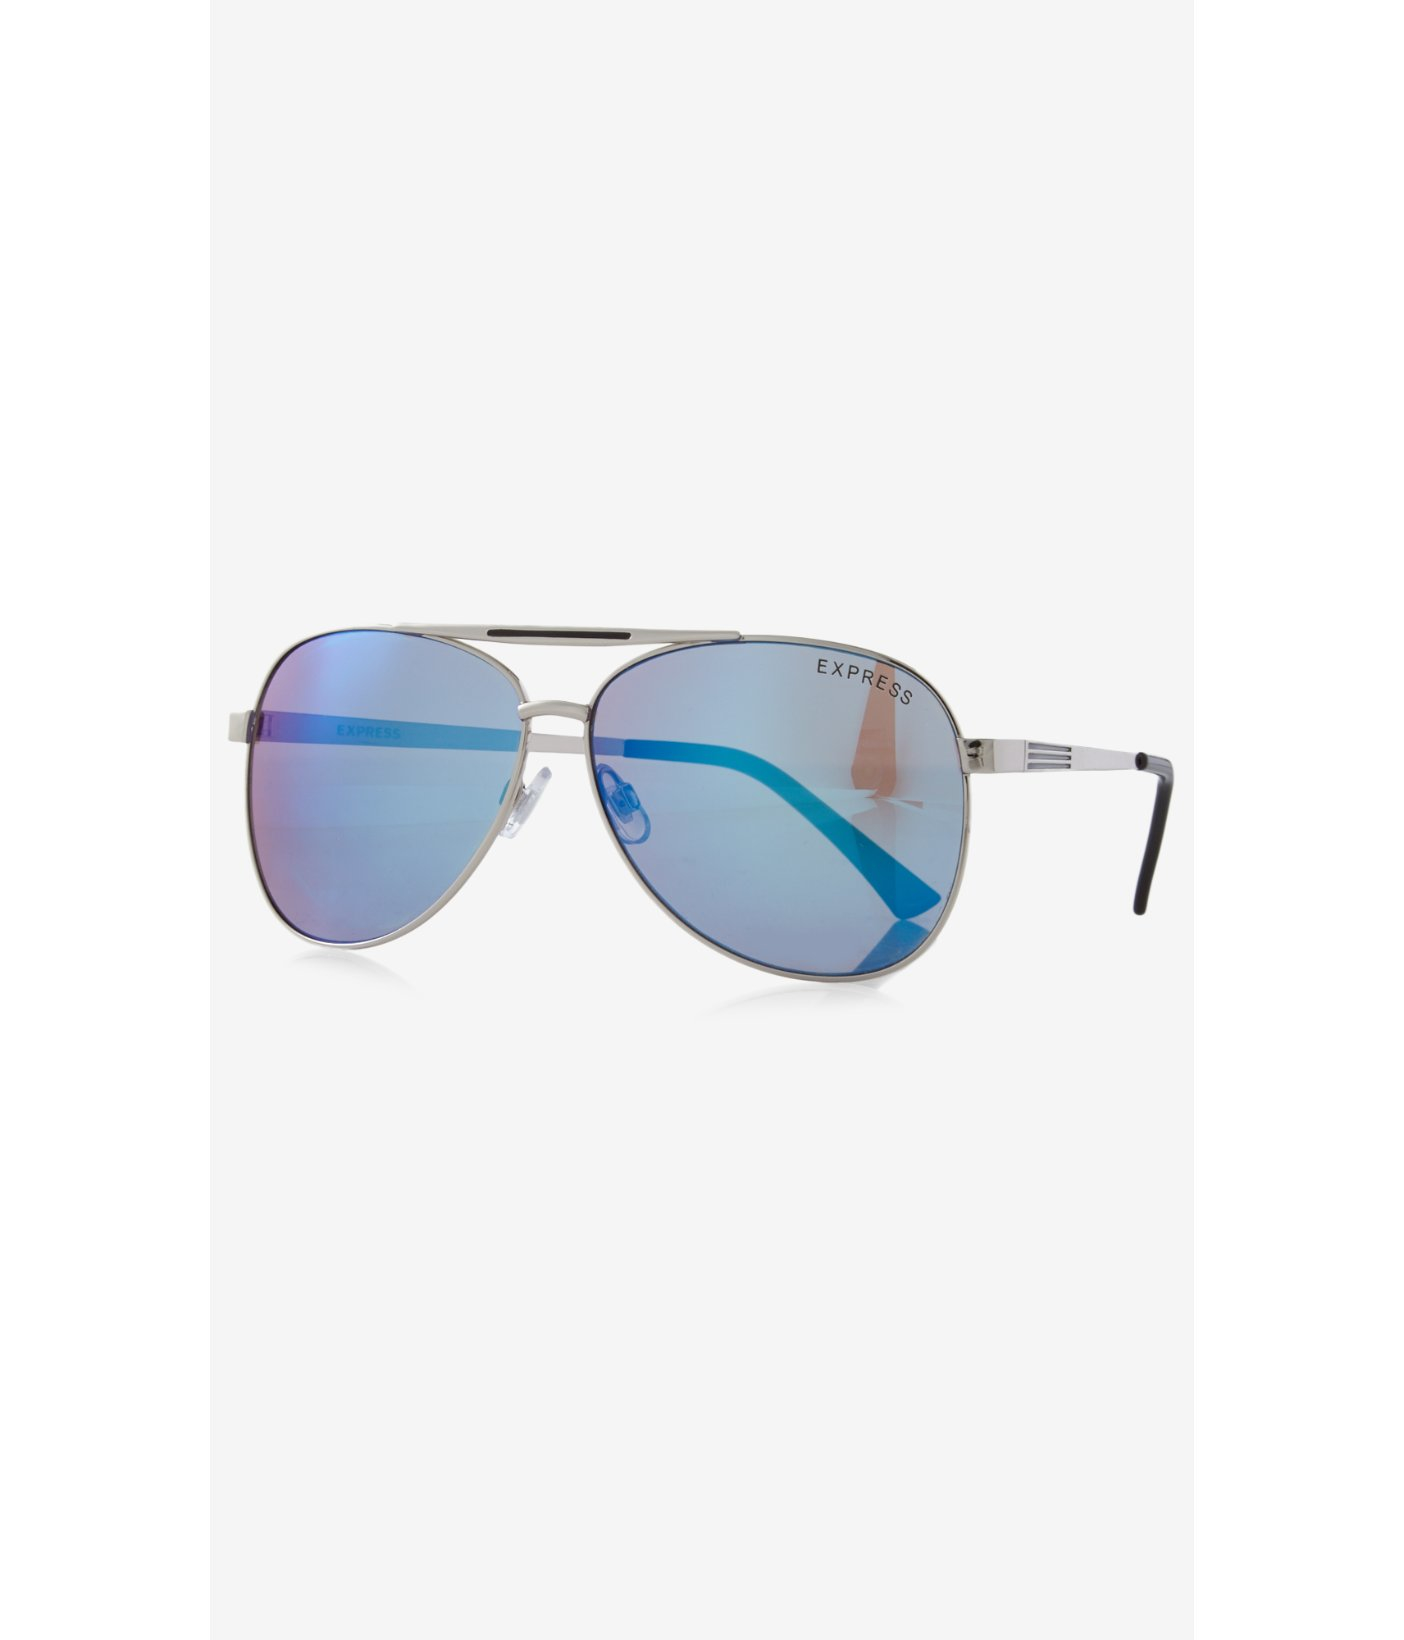 Express Sunglasses  express blue mirrored aviator sunglasses in blue for men lyst